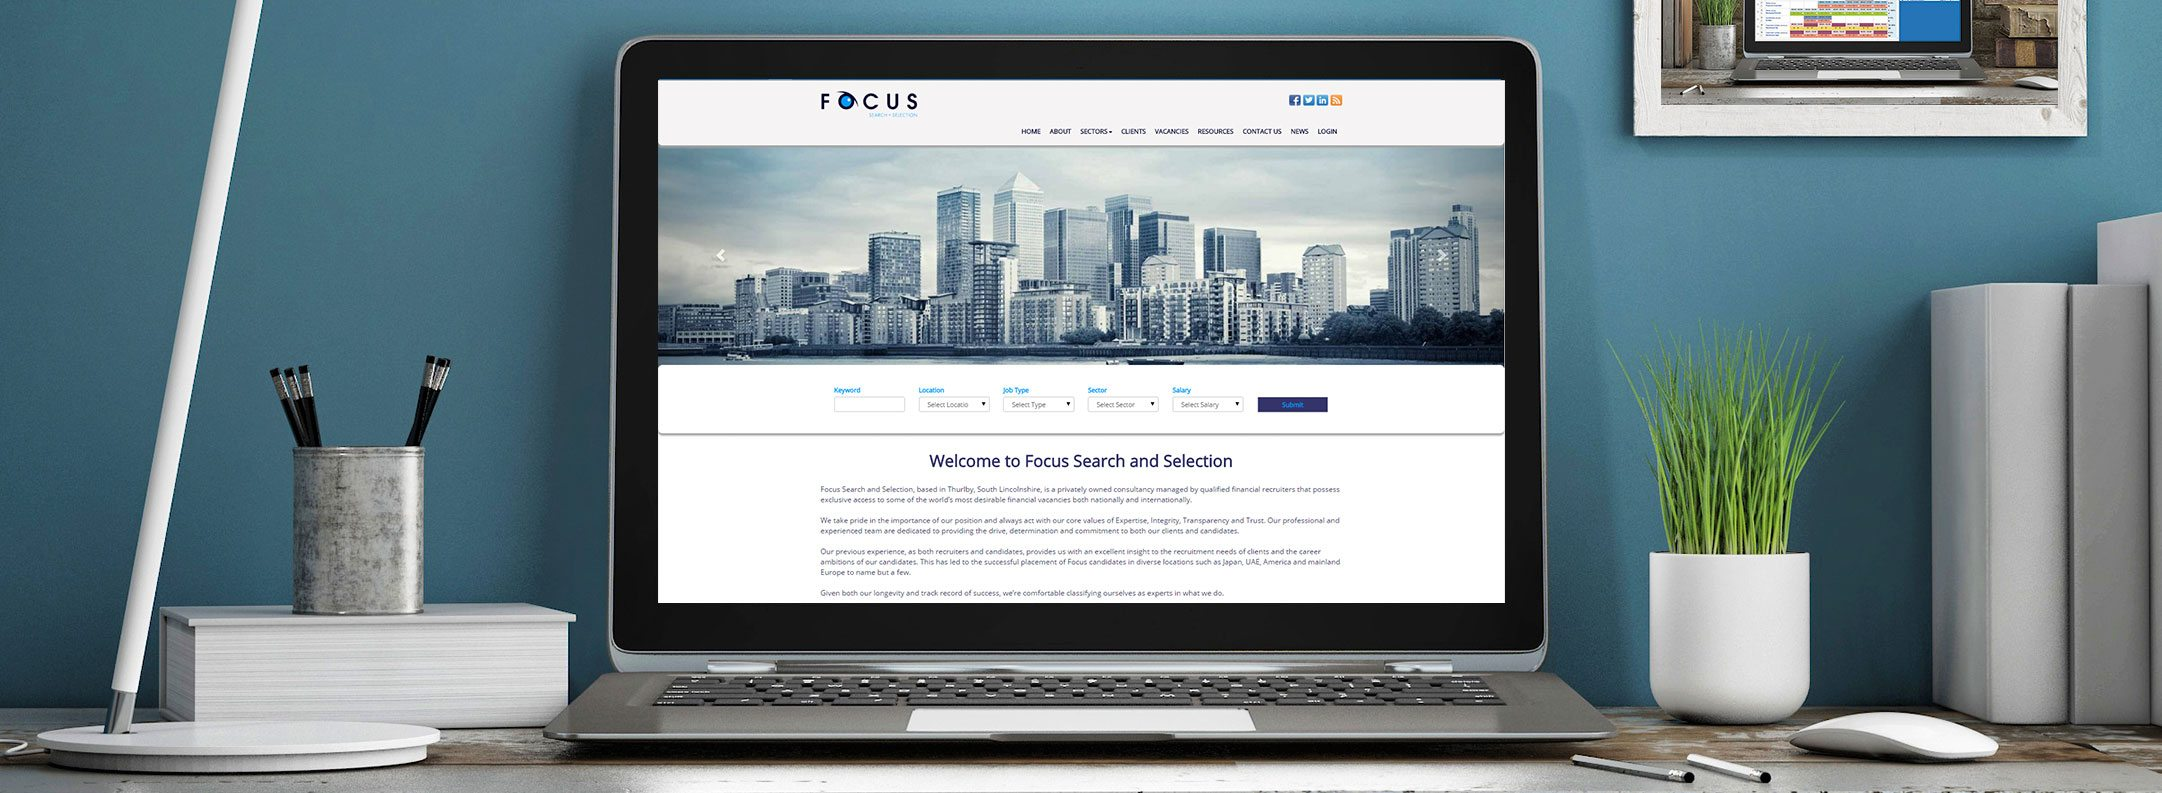 Website-banner-focus